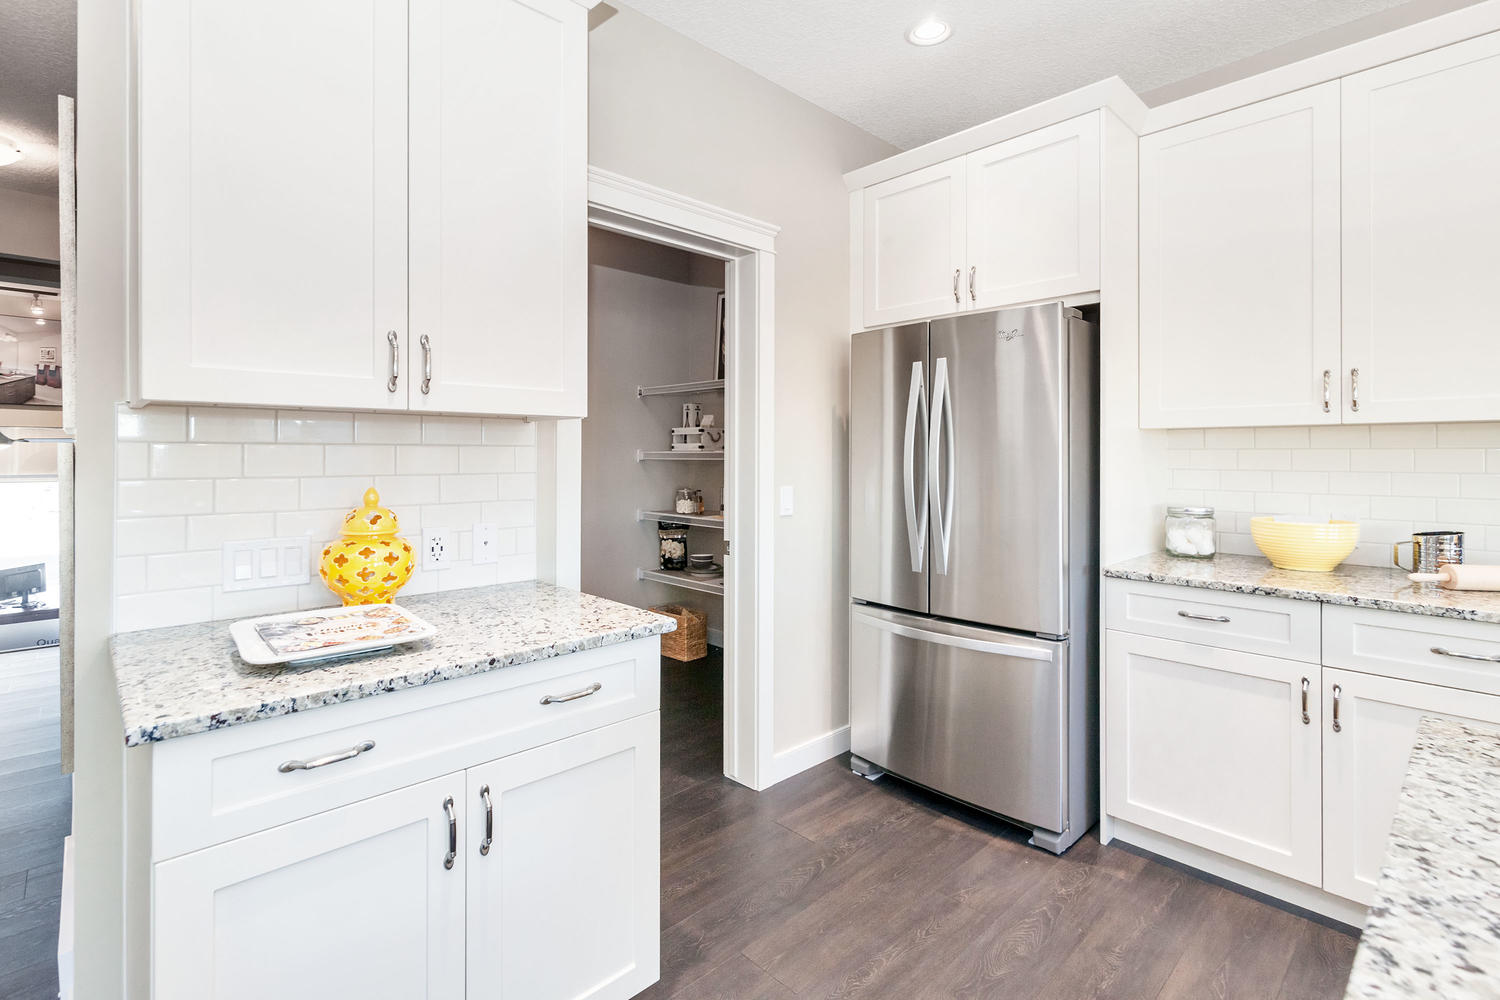 double door fridge and walk in pantry in the kitchen of the pacesetter front drive show home.